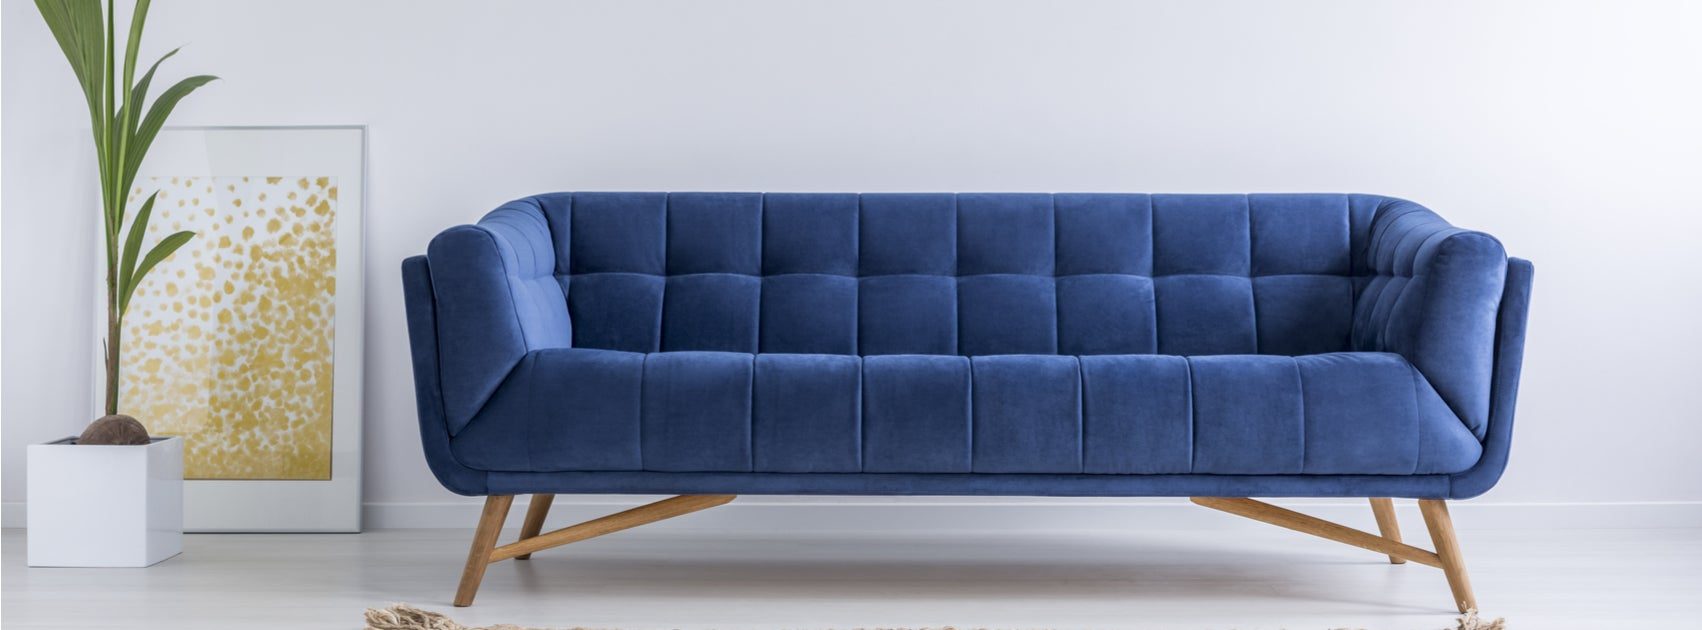 Choosing a Sofa: 5 Tips For Choosing The Right Sofa